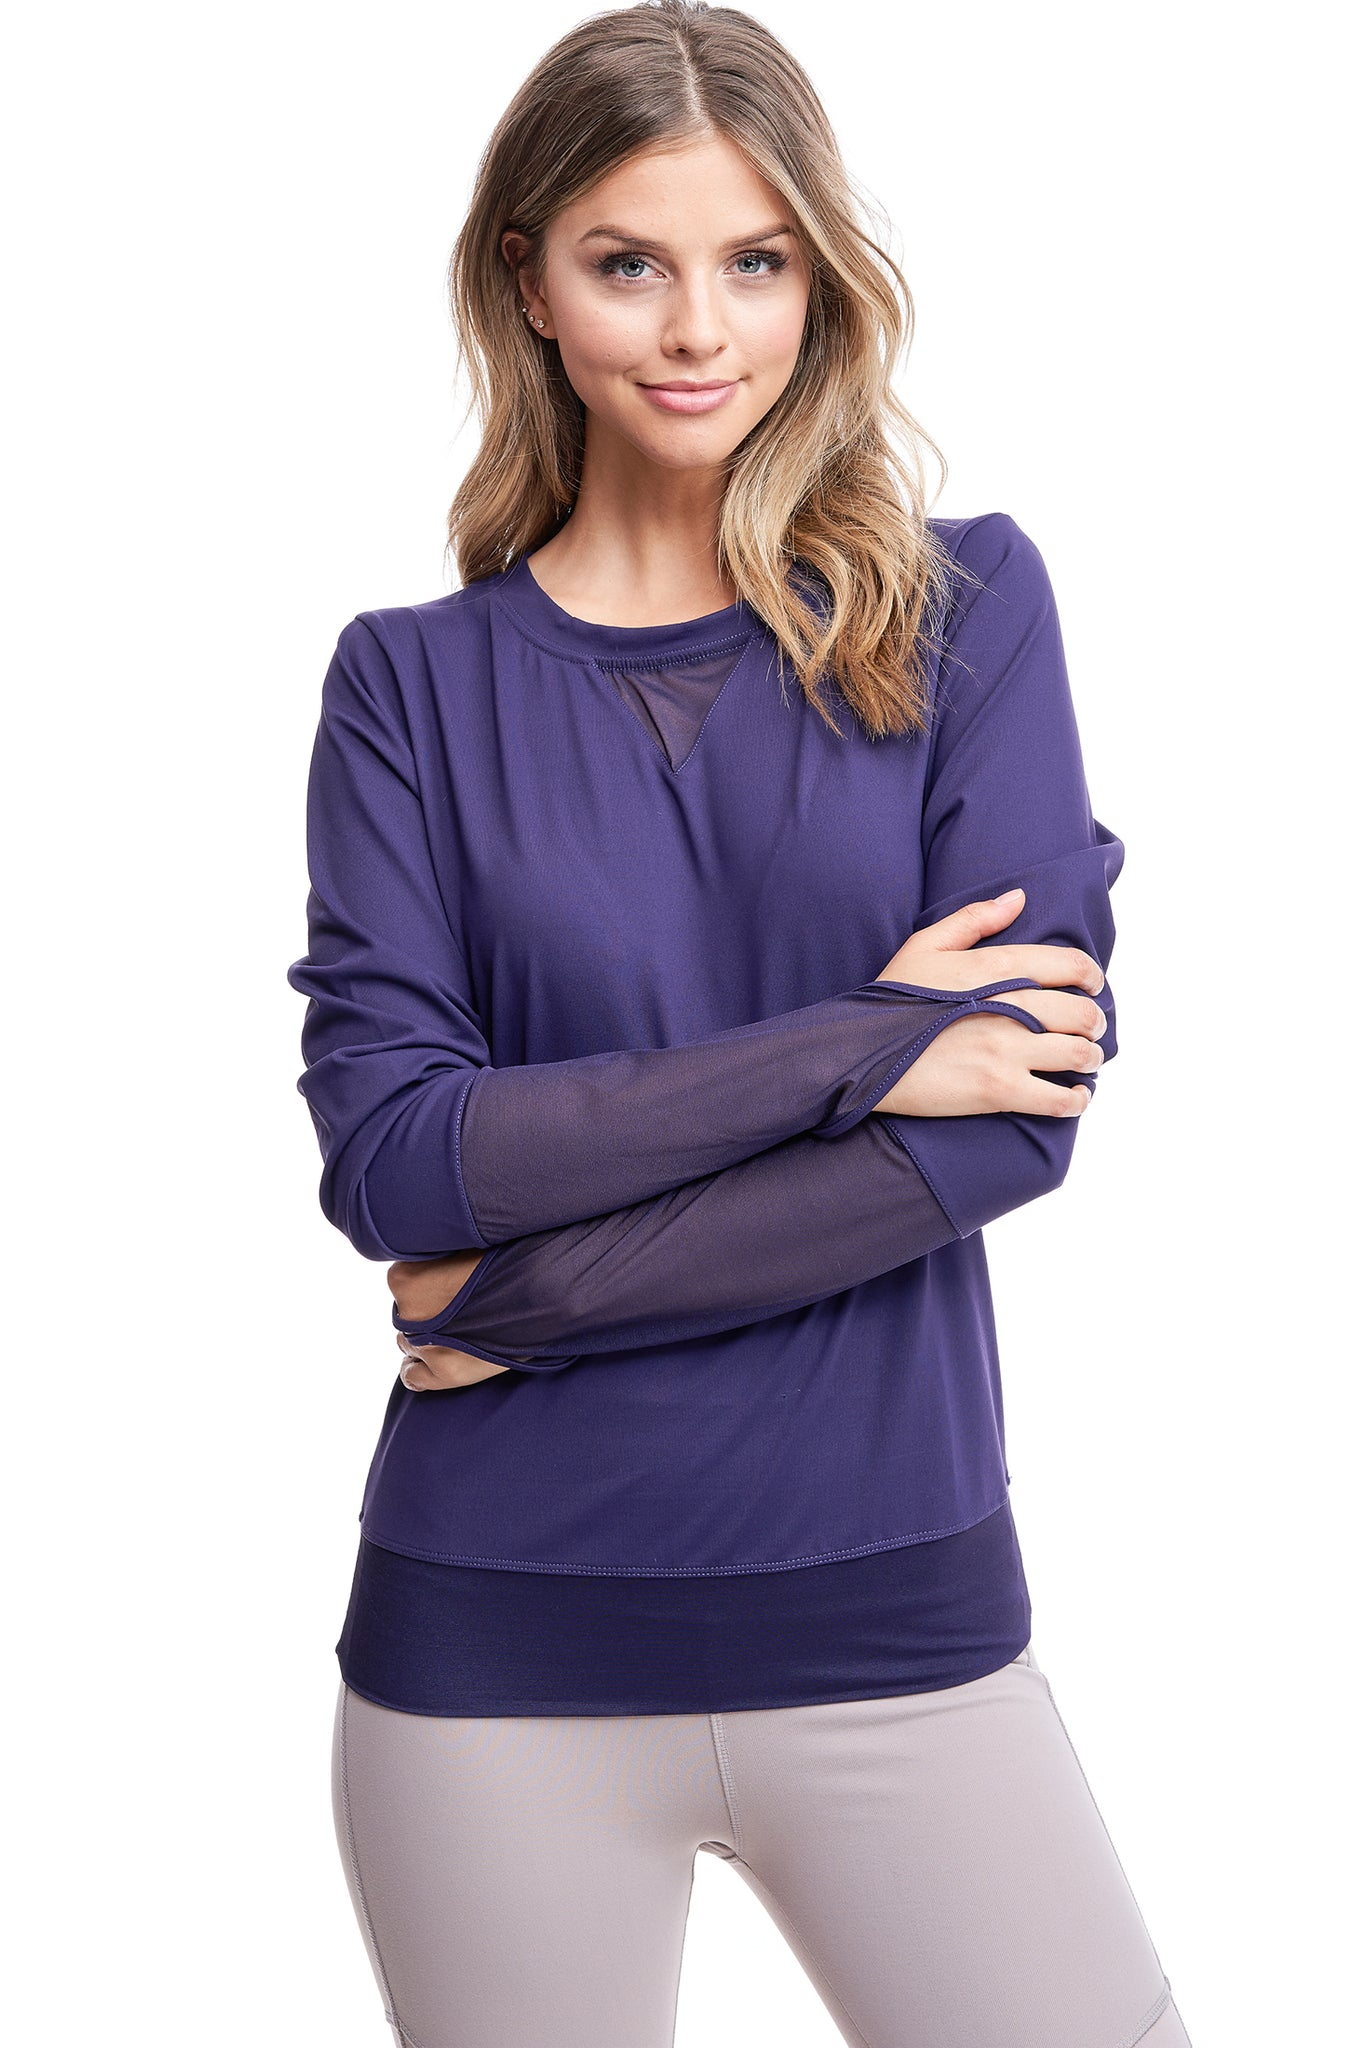 ALL ANGLES MESH PULL OVER | PURPLE